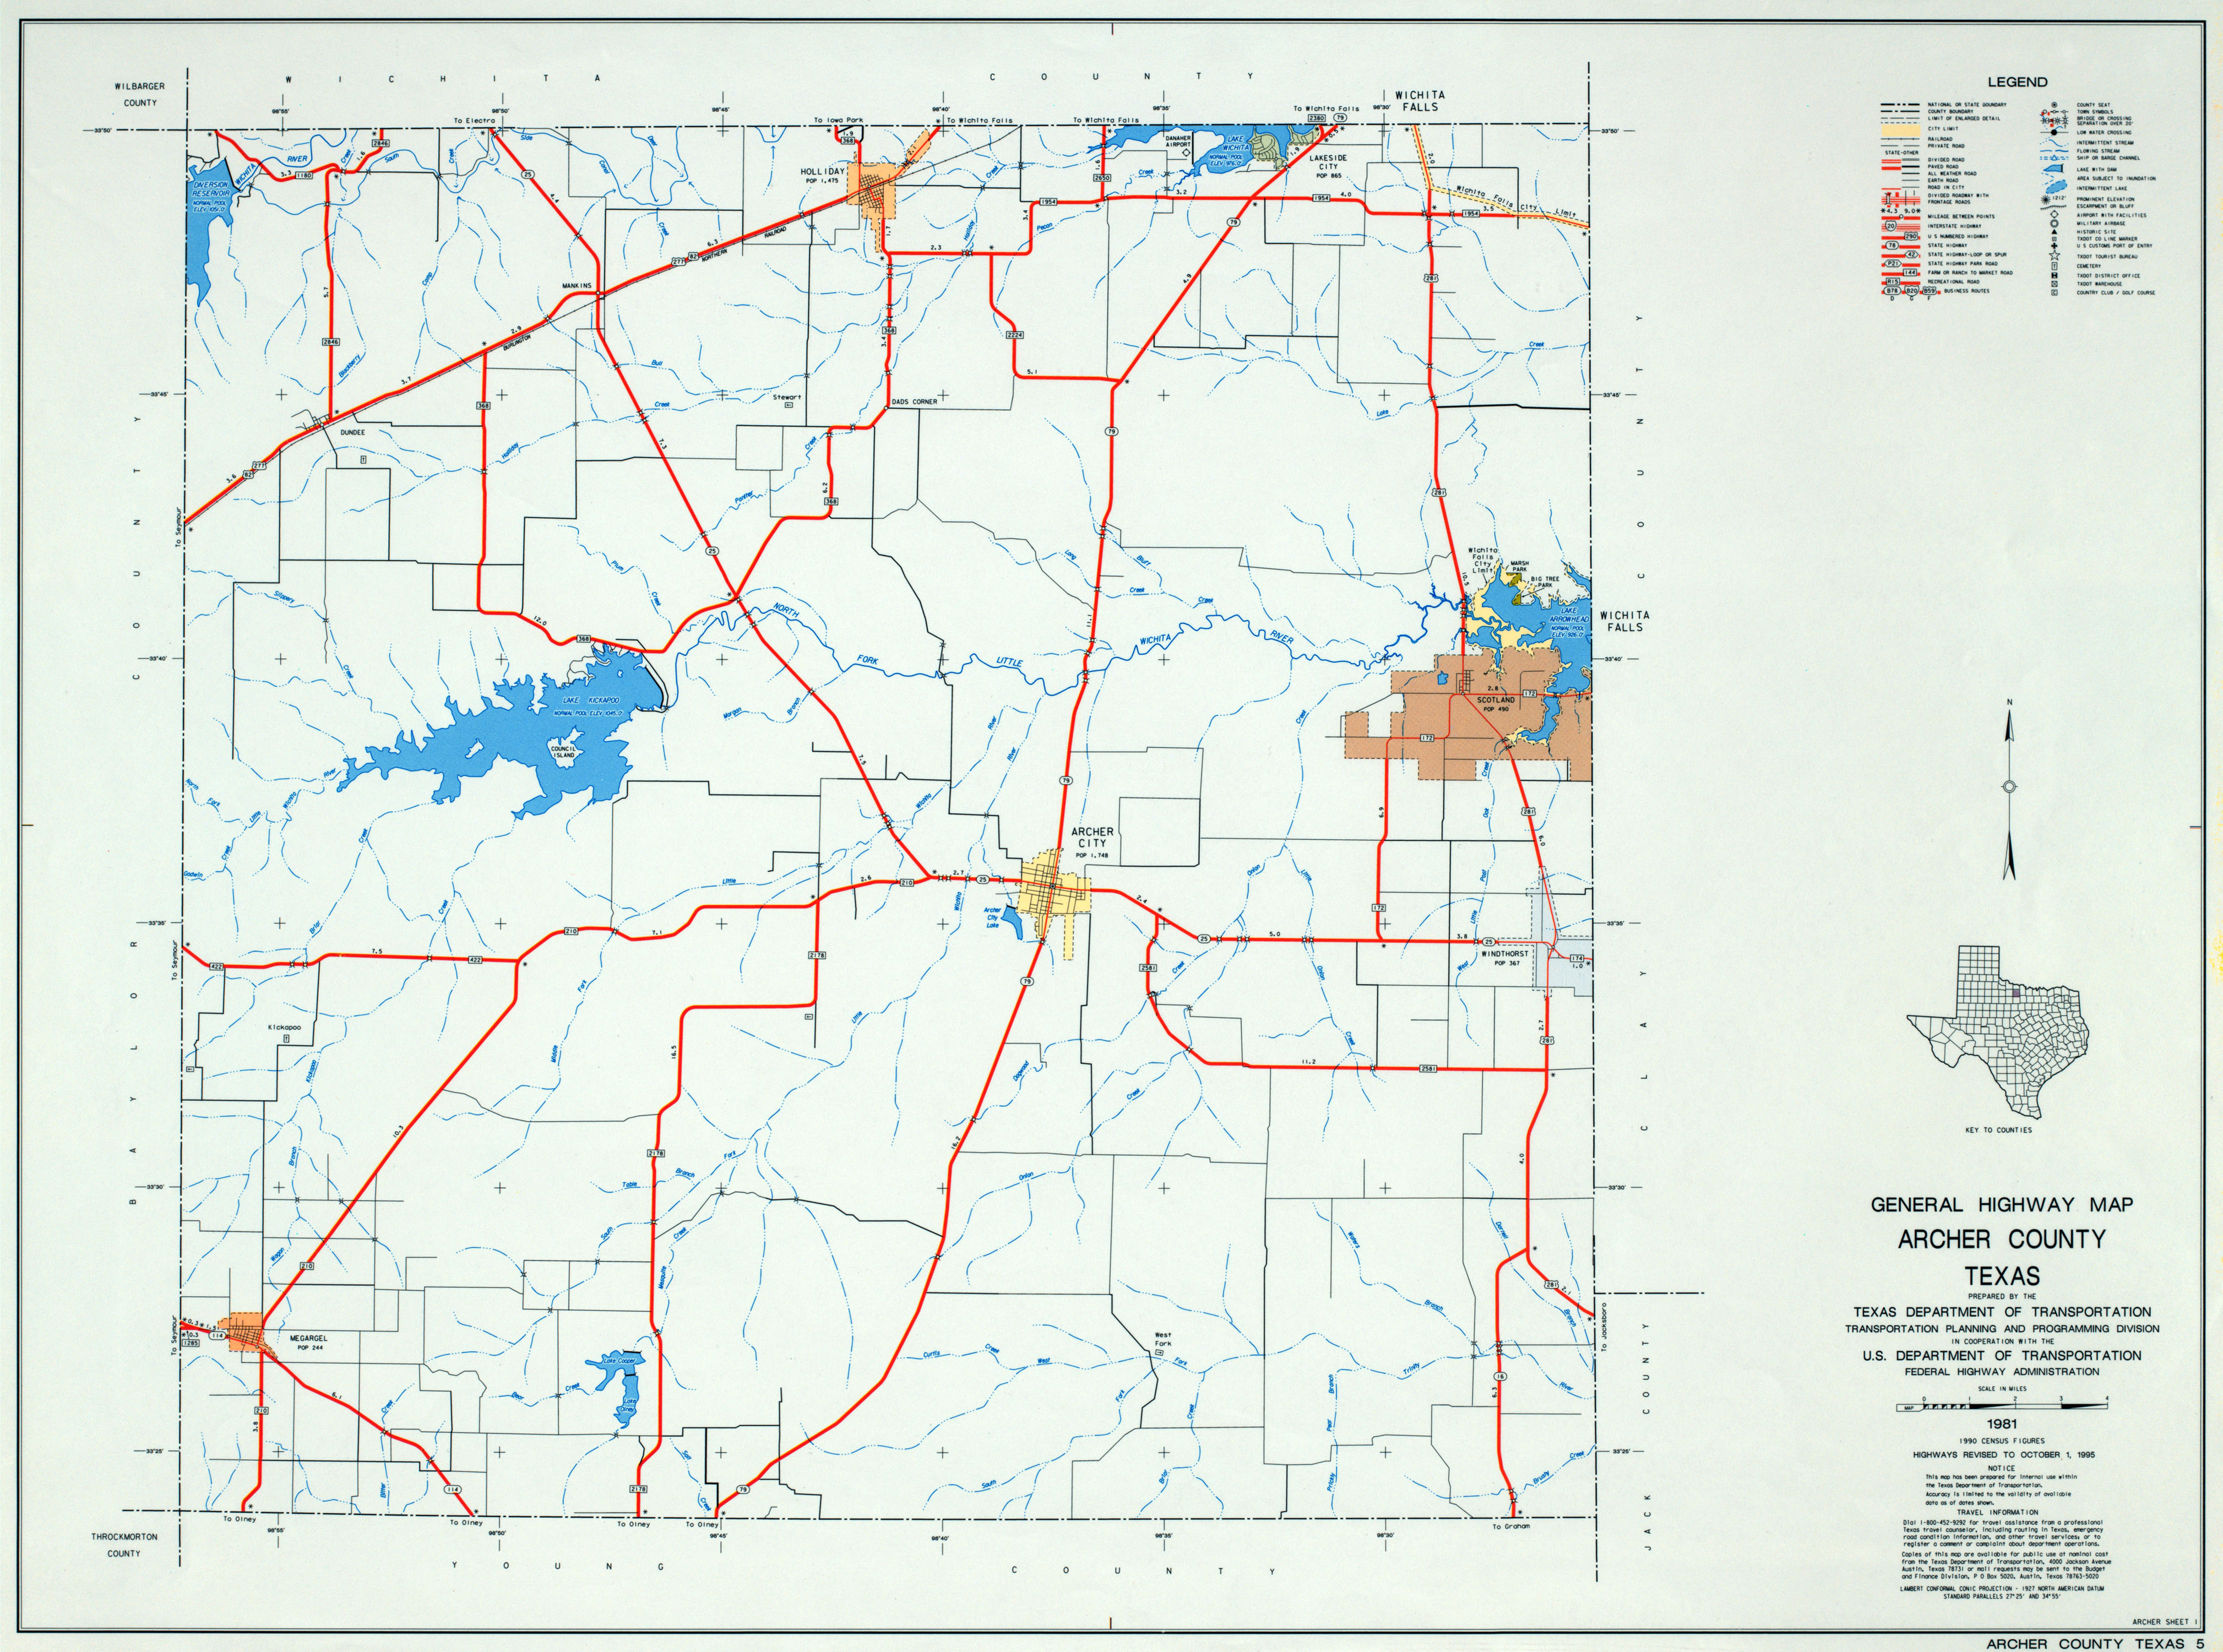 Texas County Highway Maps Browse Perry Castaneda Map